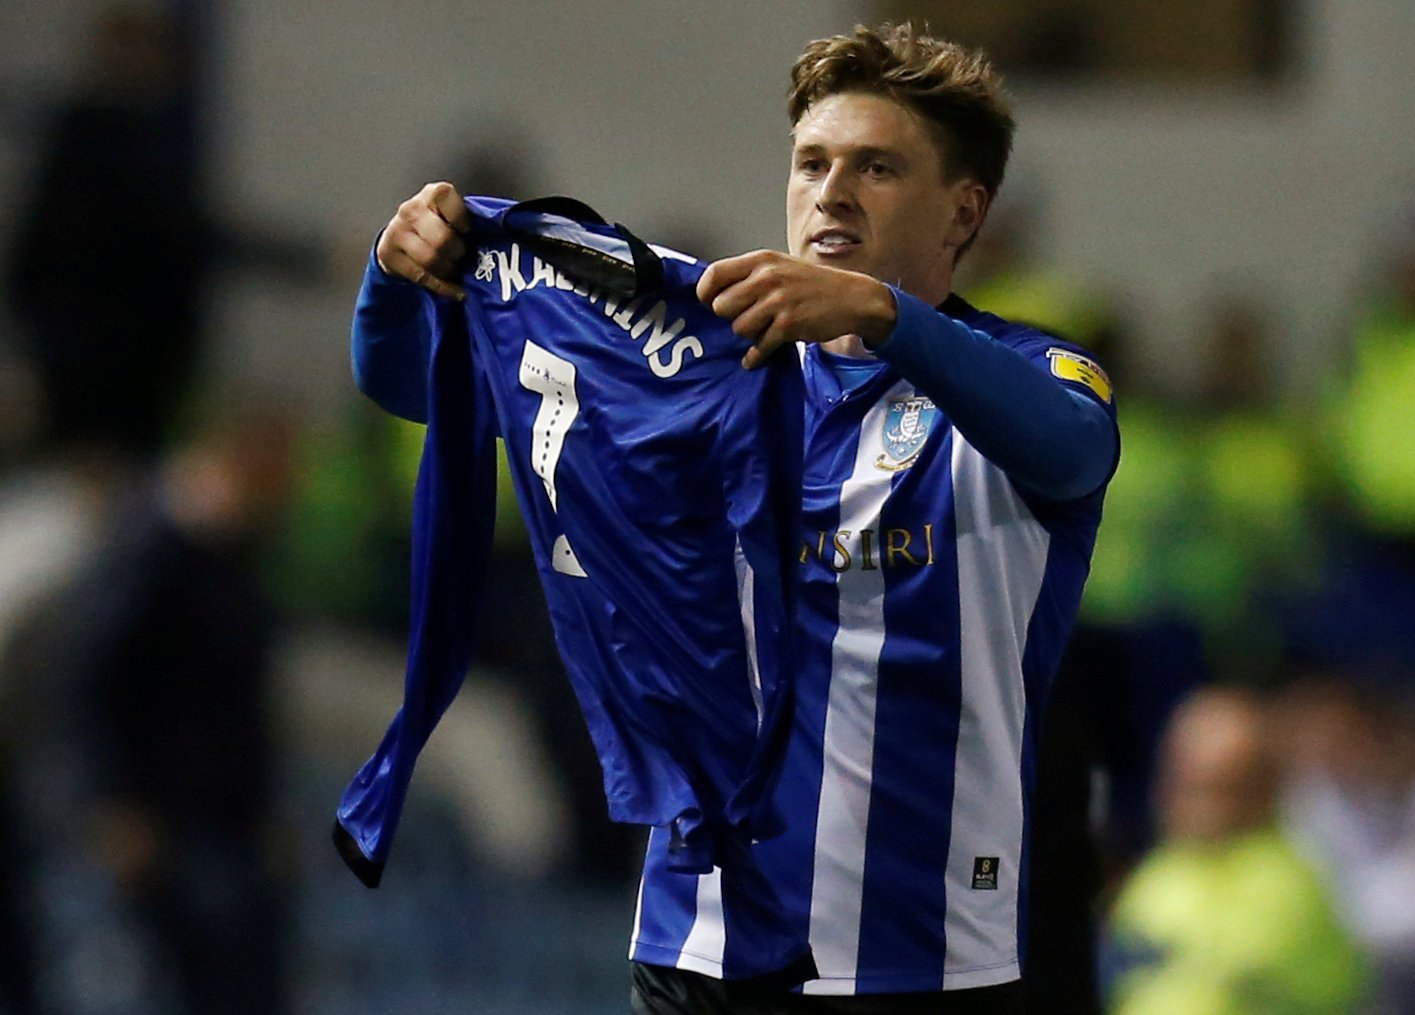 Howson believes it might be best for Sheff Wed to sell Adam Reach in the winter